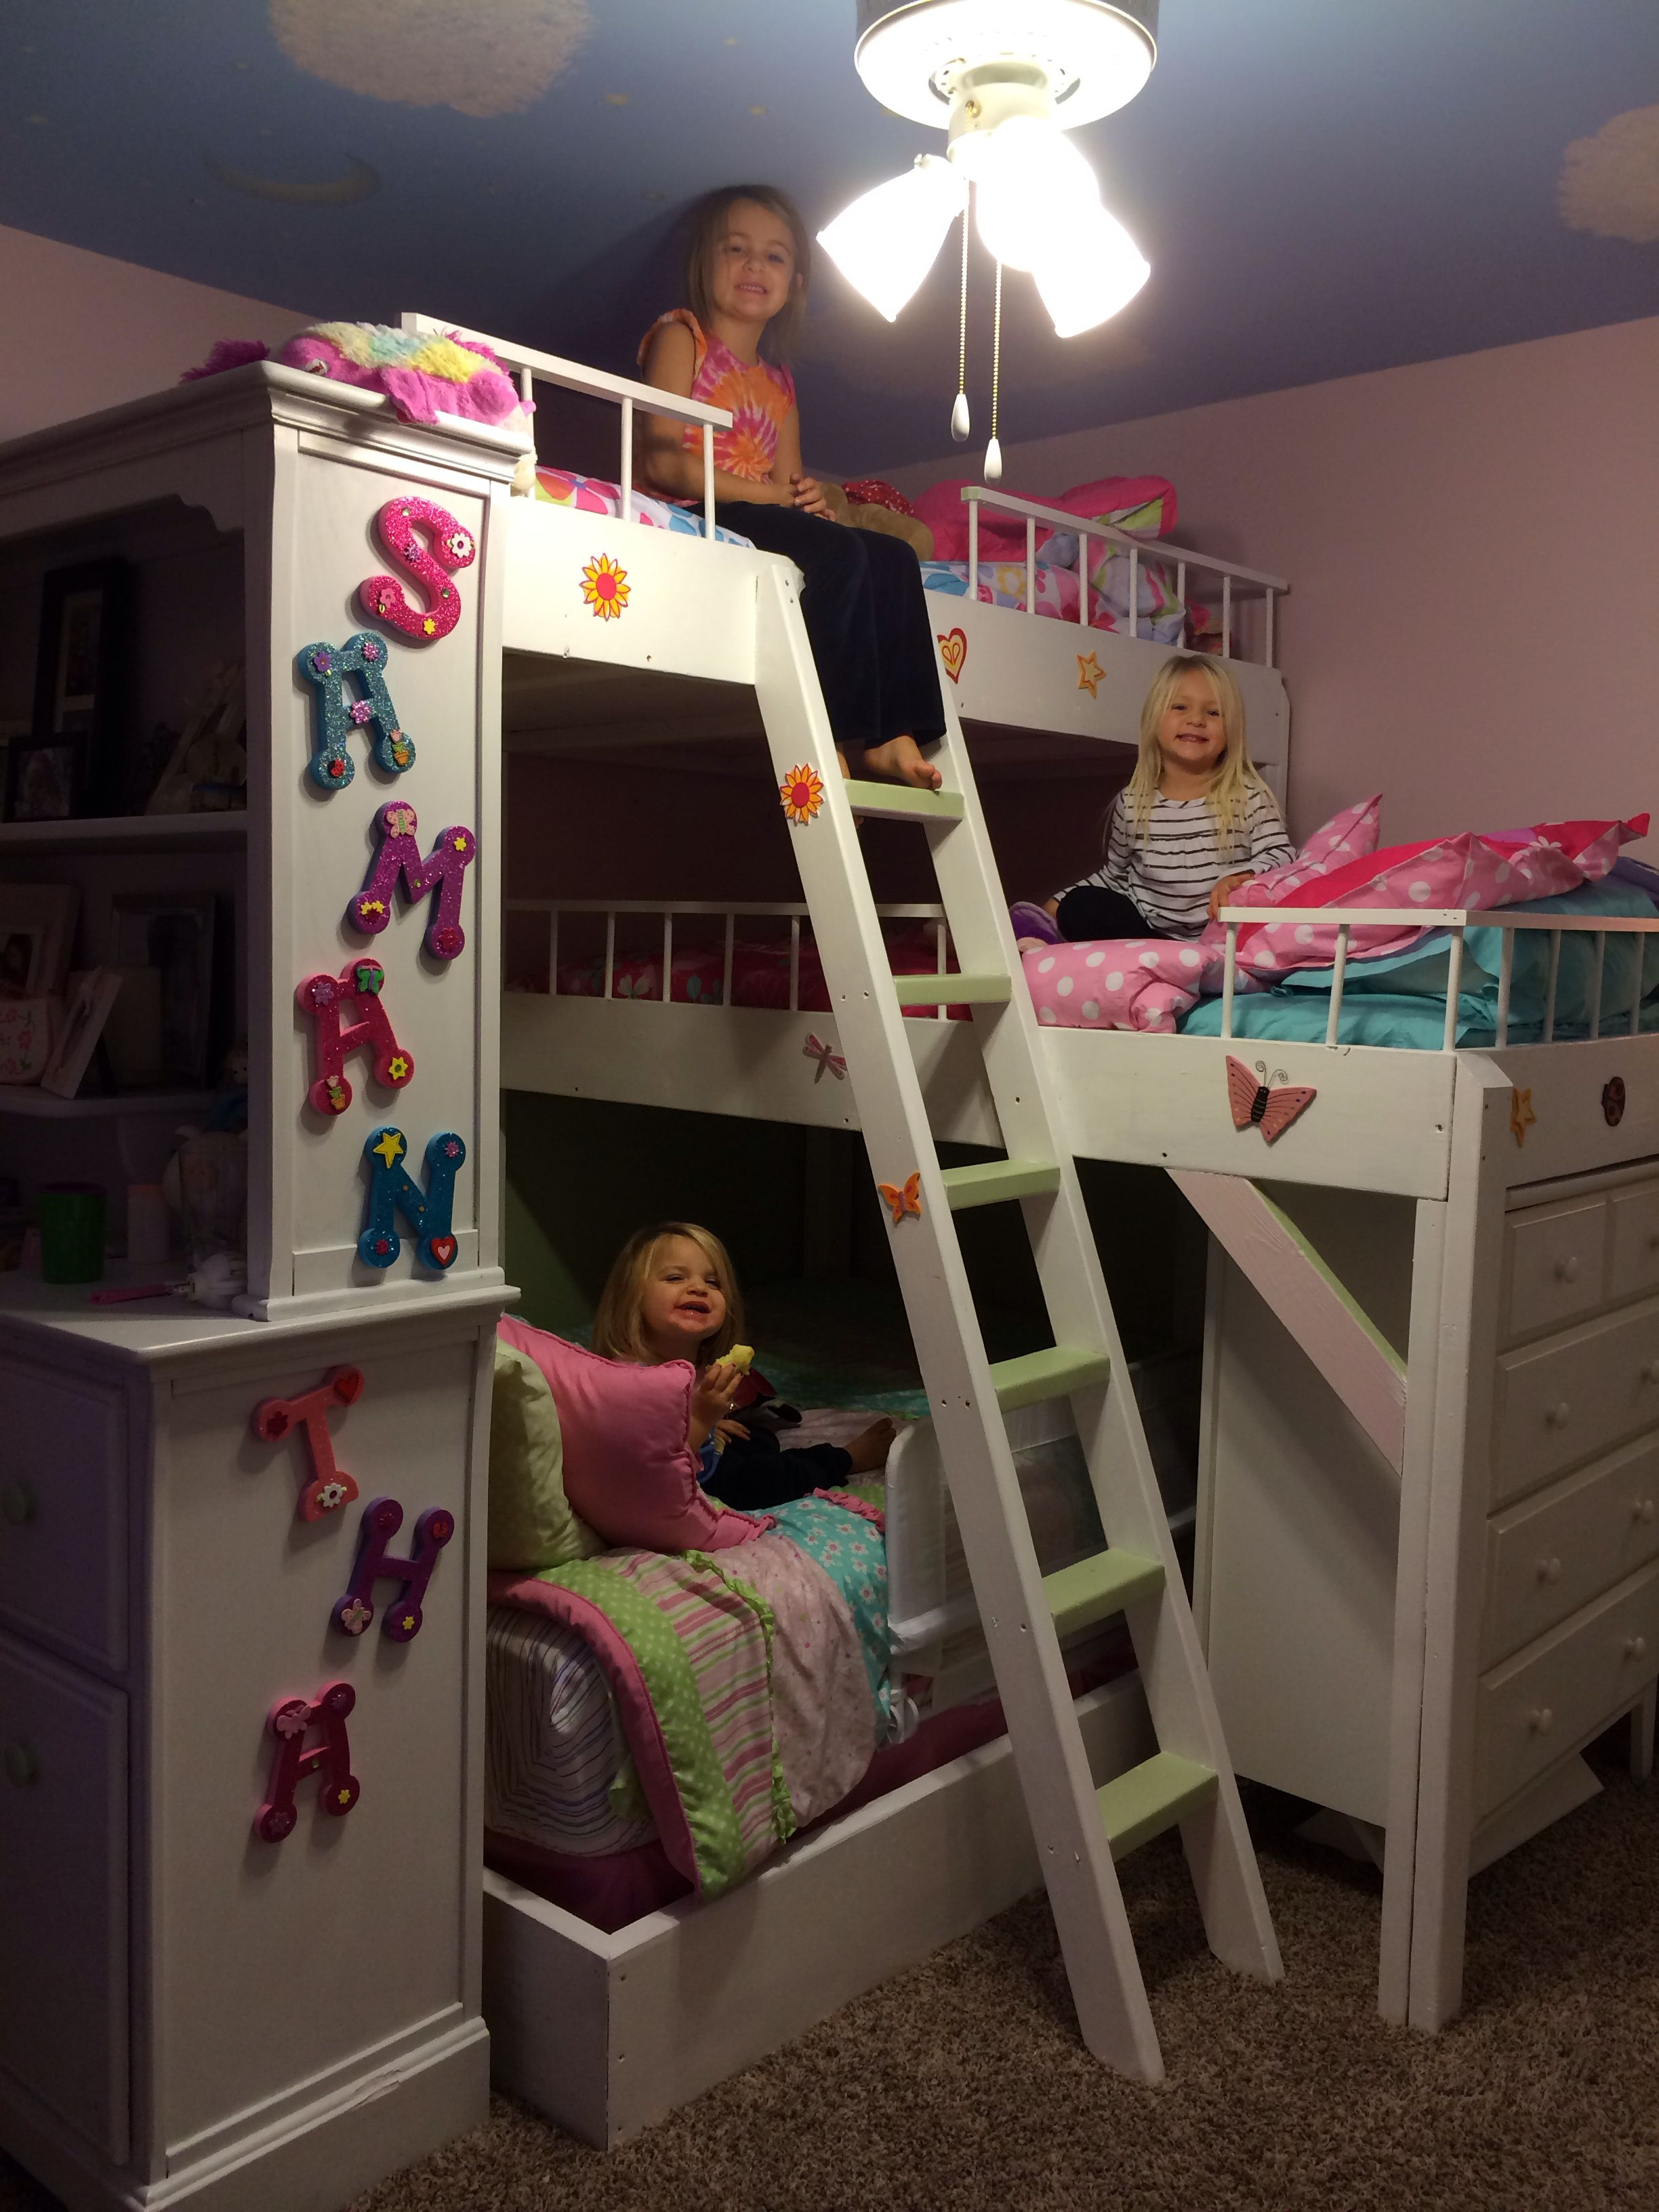 Diy Triple Bunk Bed Girls Room If You Build It They Will Come